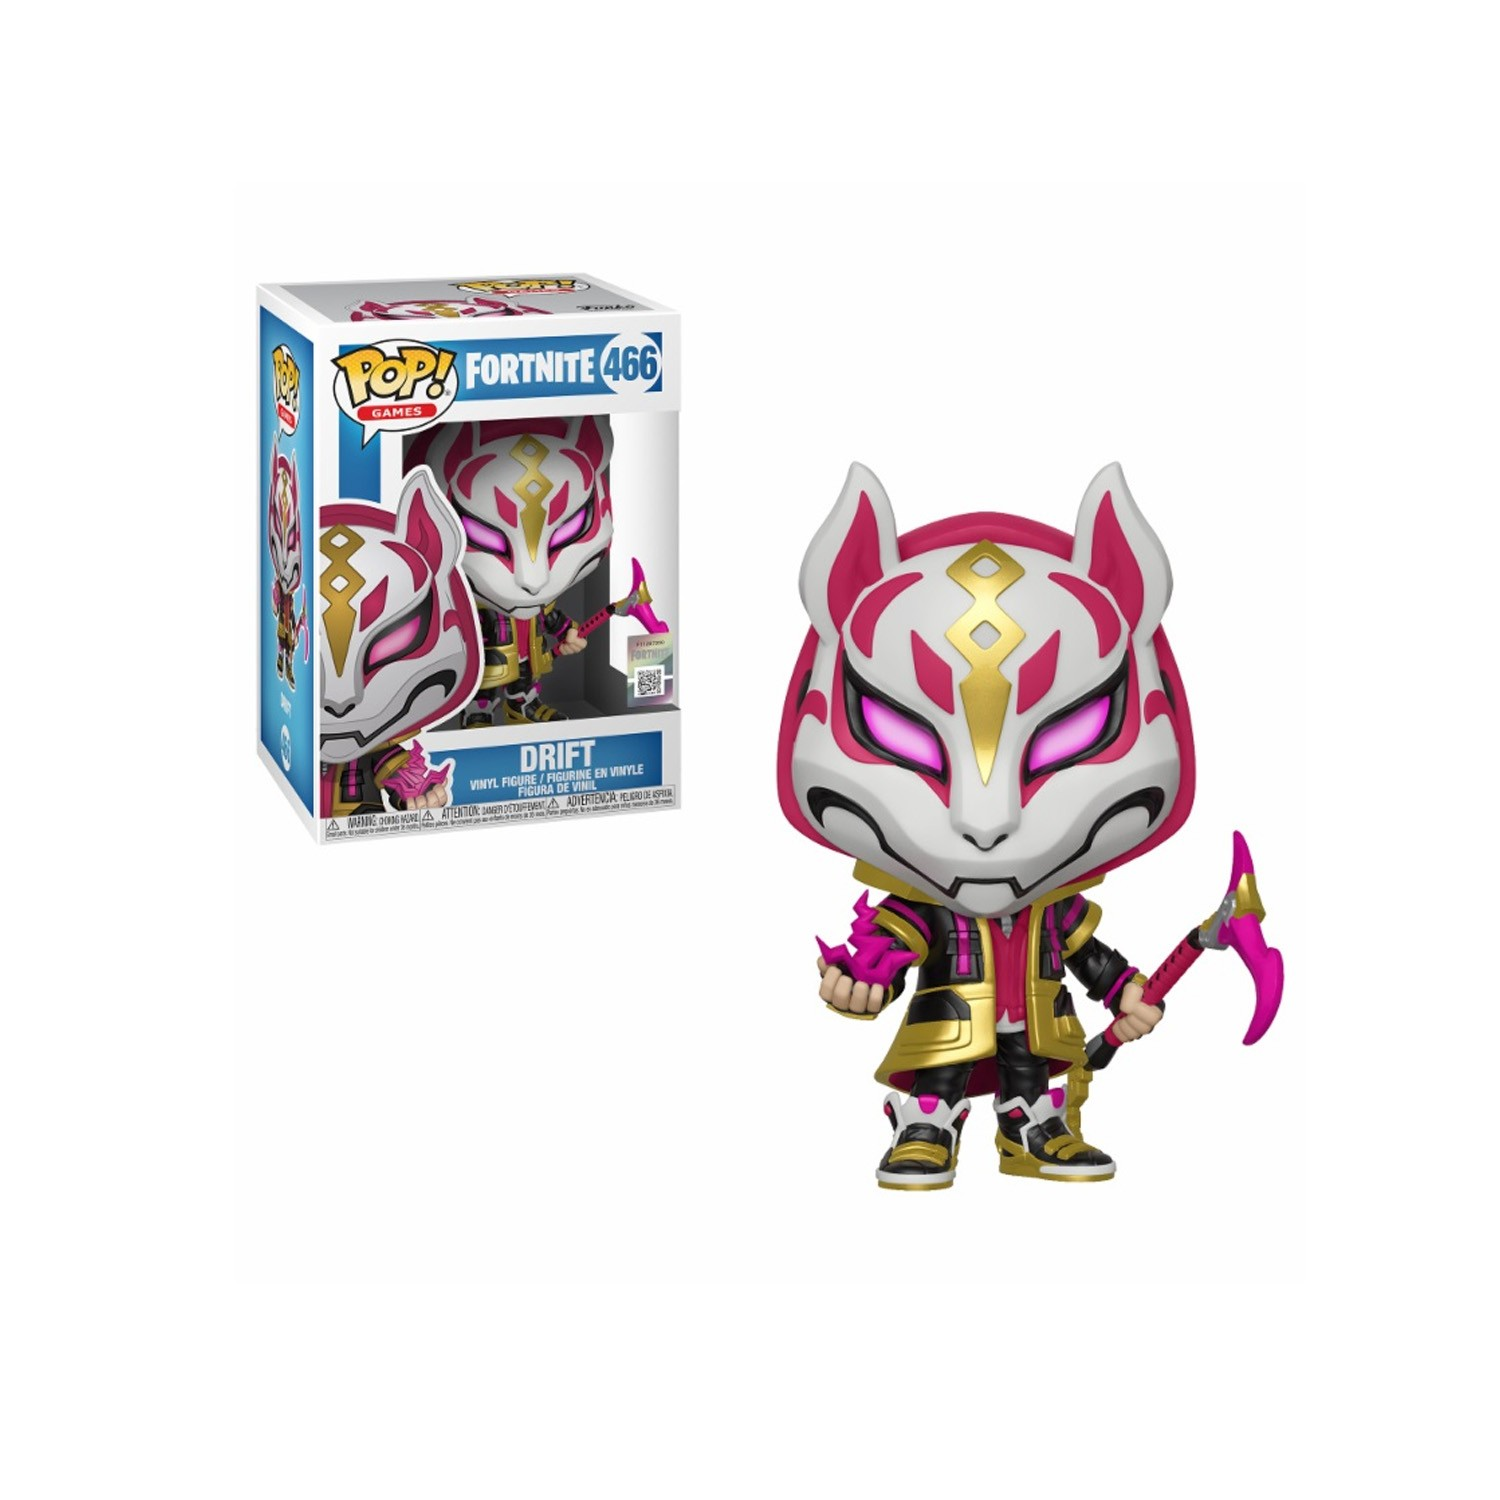 FORTNITE -  POP! VINYL FIGURE OF DRIFT (4 INCH) 466